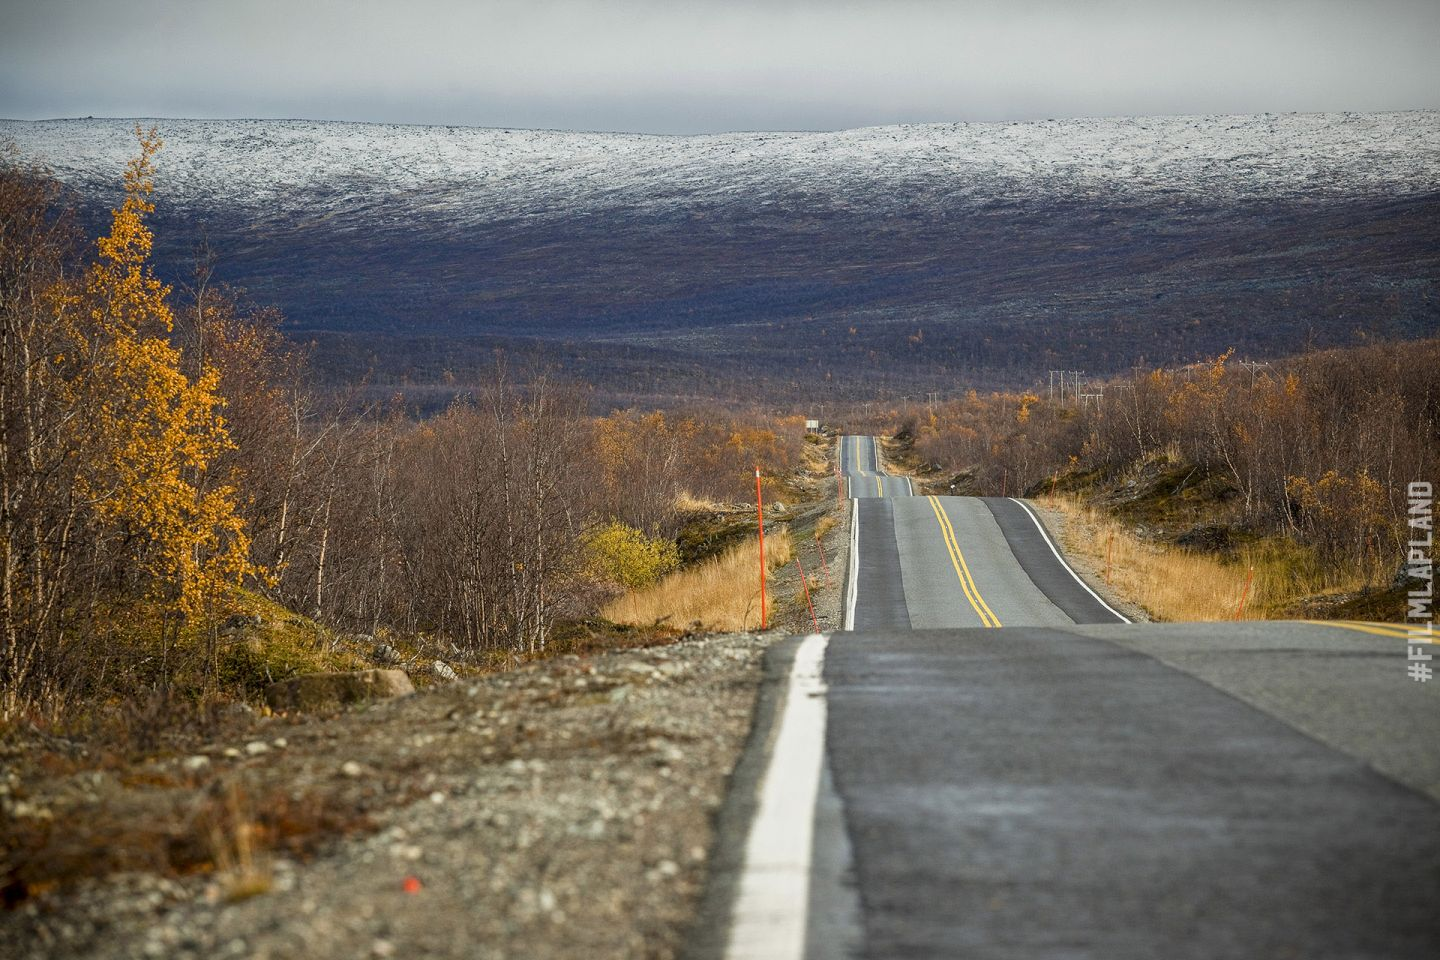 Rolling highway road in Kilpisjärvi, with Arctic hills in the distance